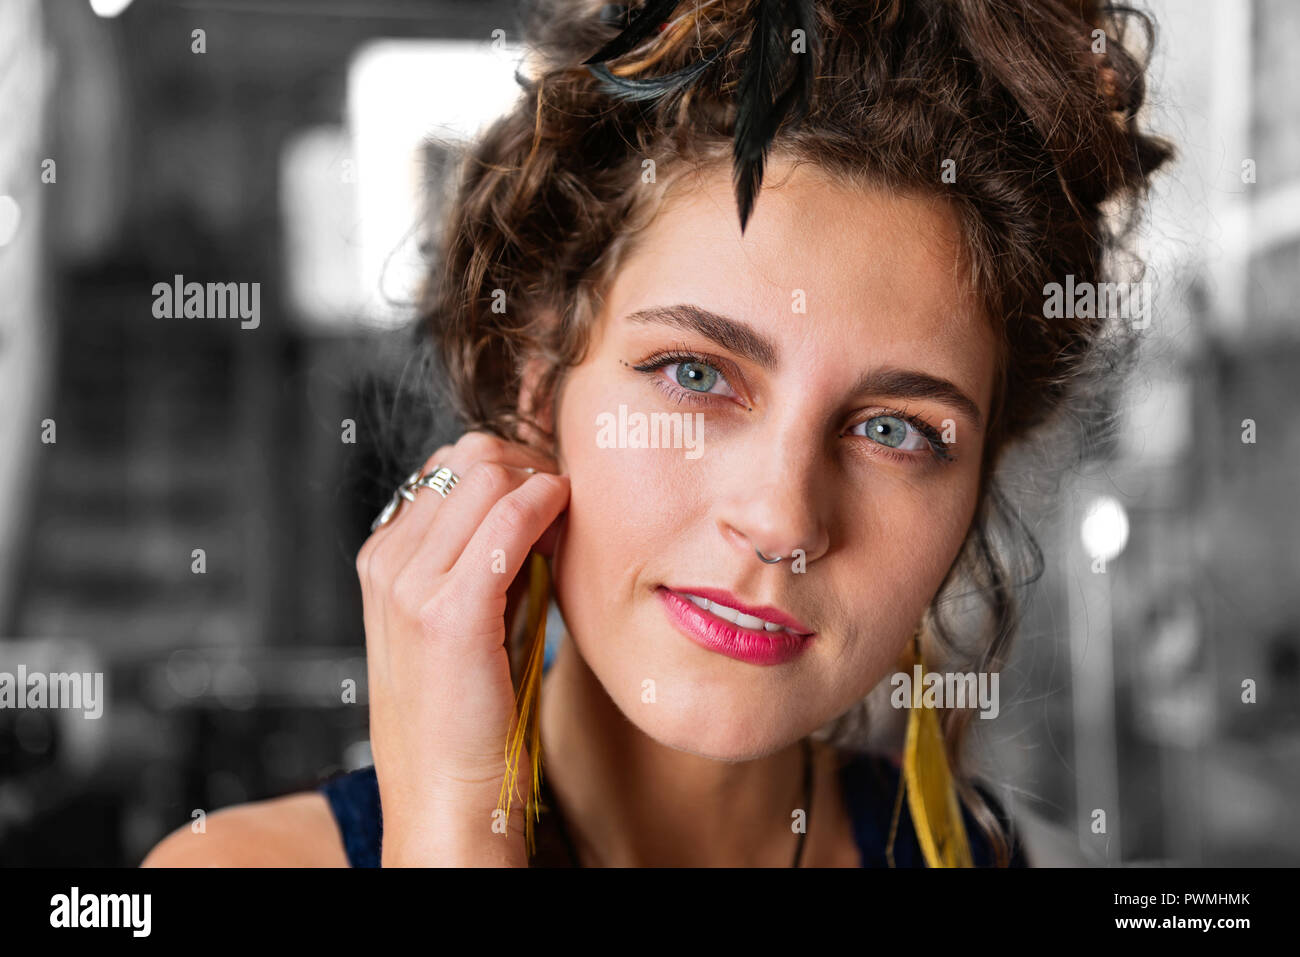 Stylish modern woman with piercing in her nose wearing stylish accessories - Stock Image